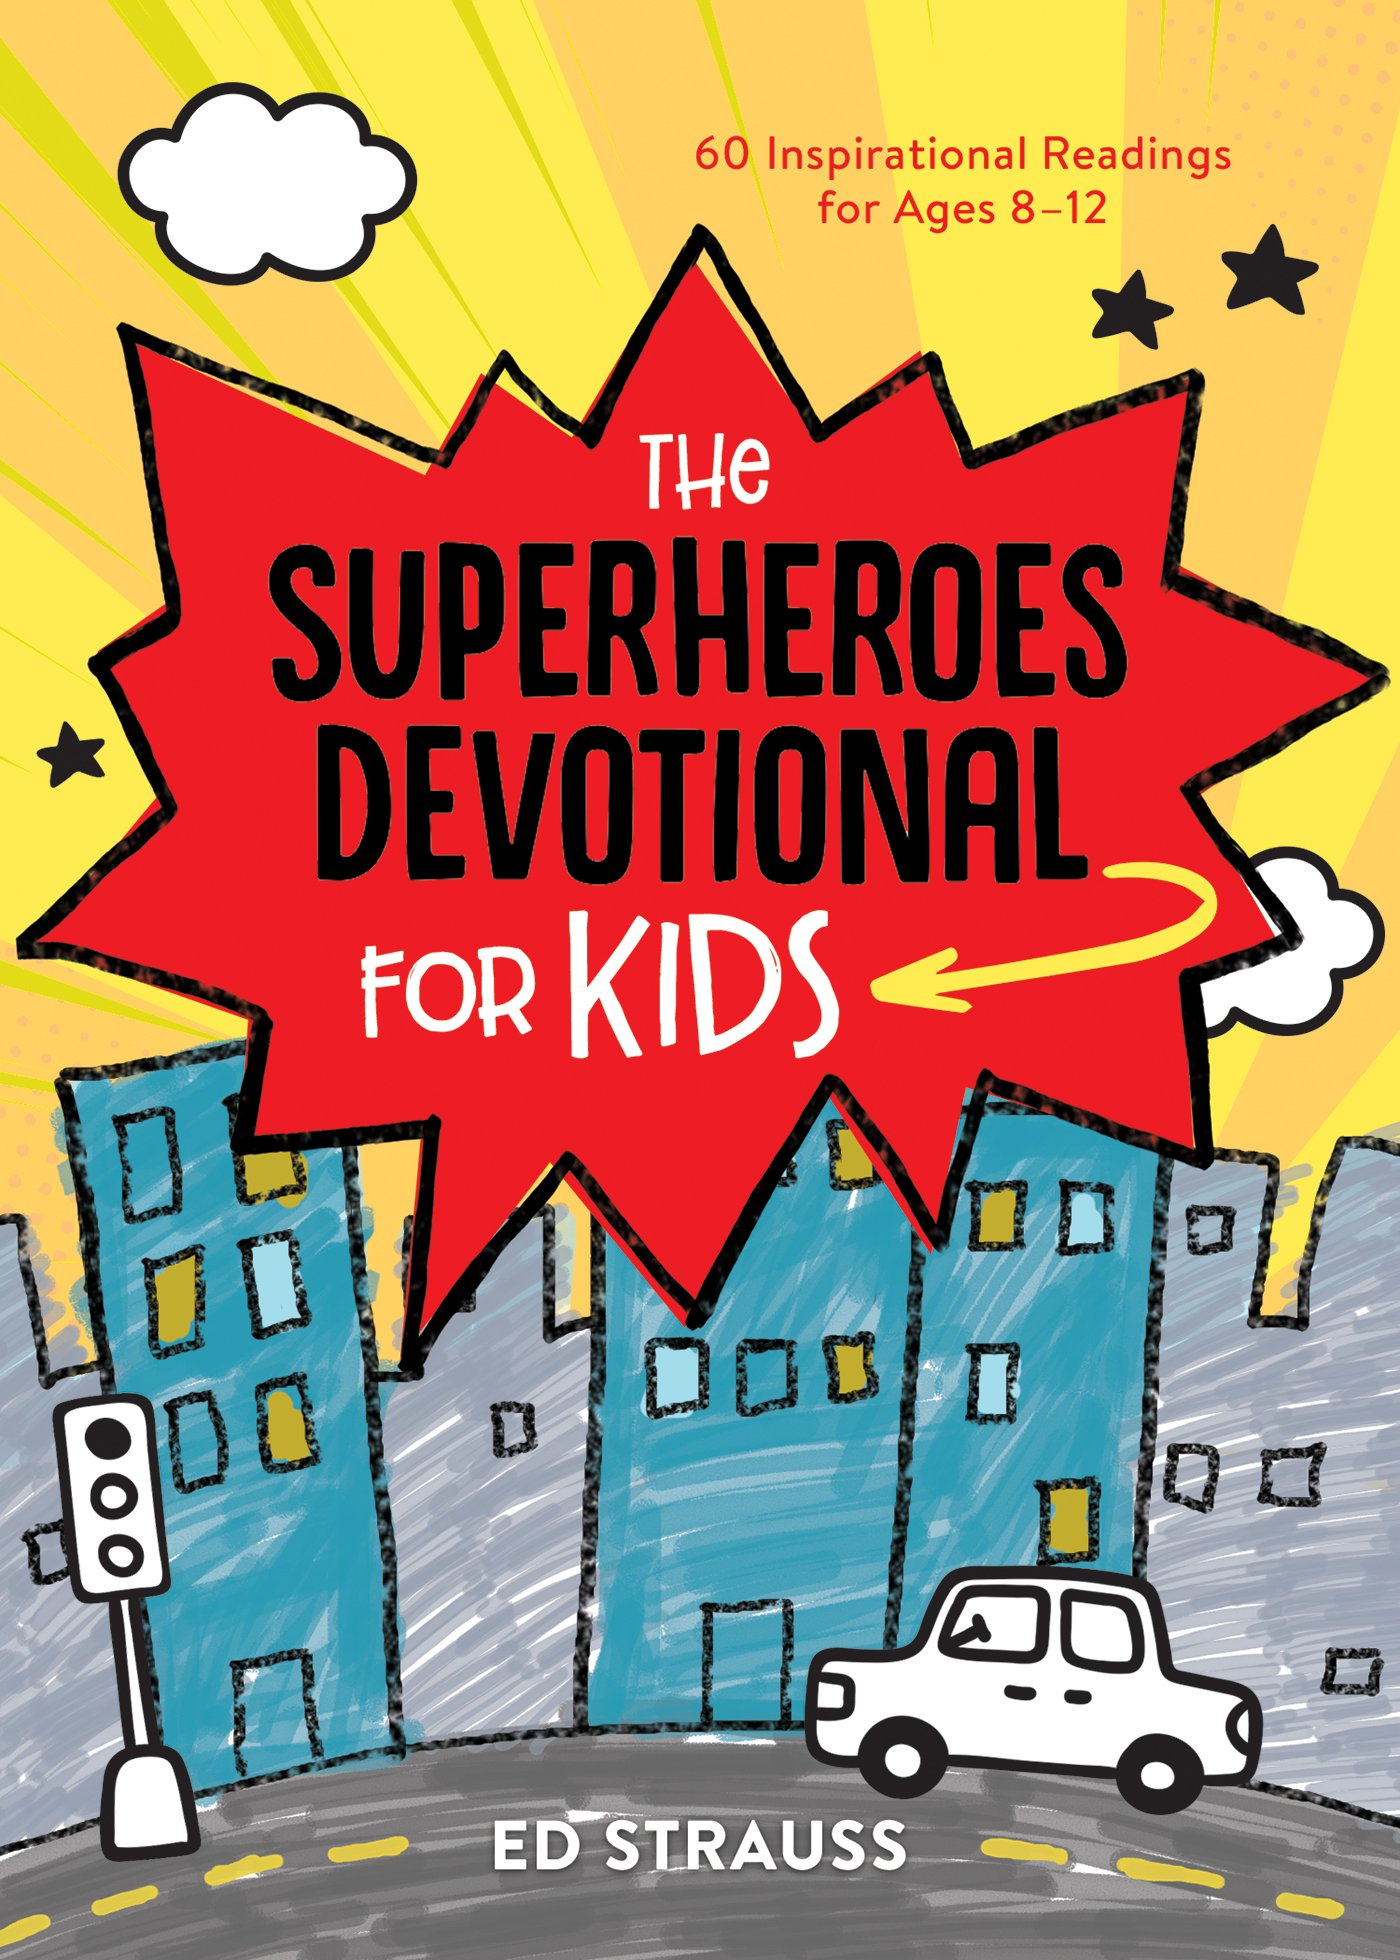 The Superheroes Devotional for Kids: 60 Inspirational Readings for Ages  8-12 Paperback – November 1, 2018